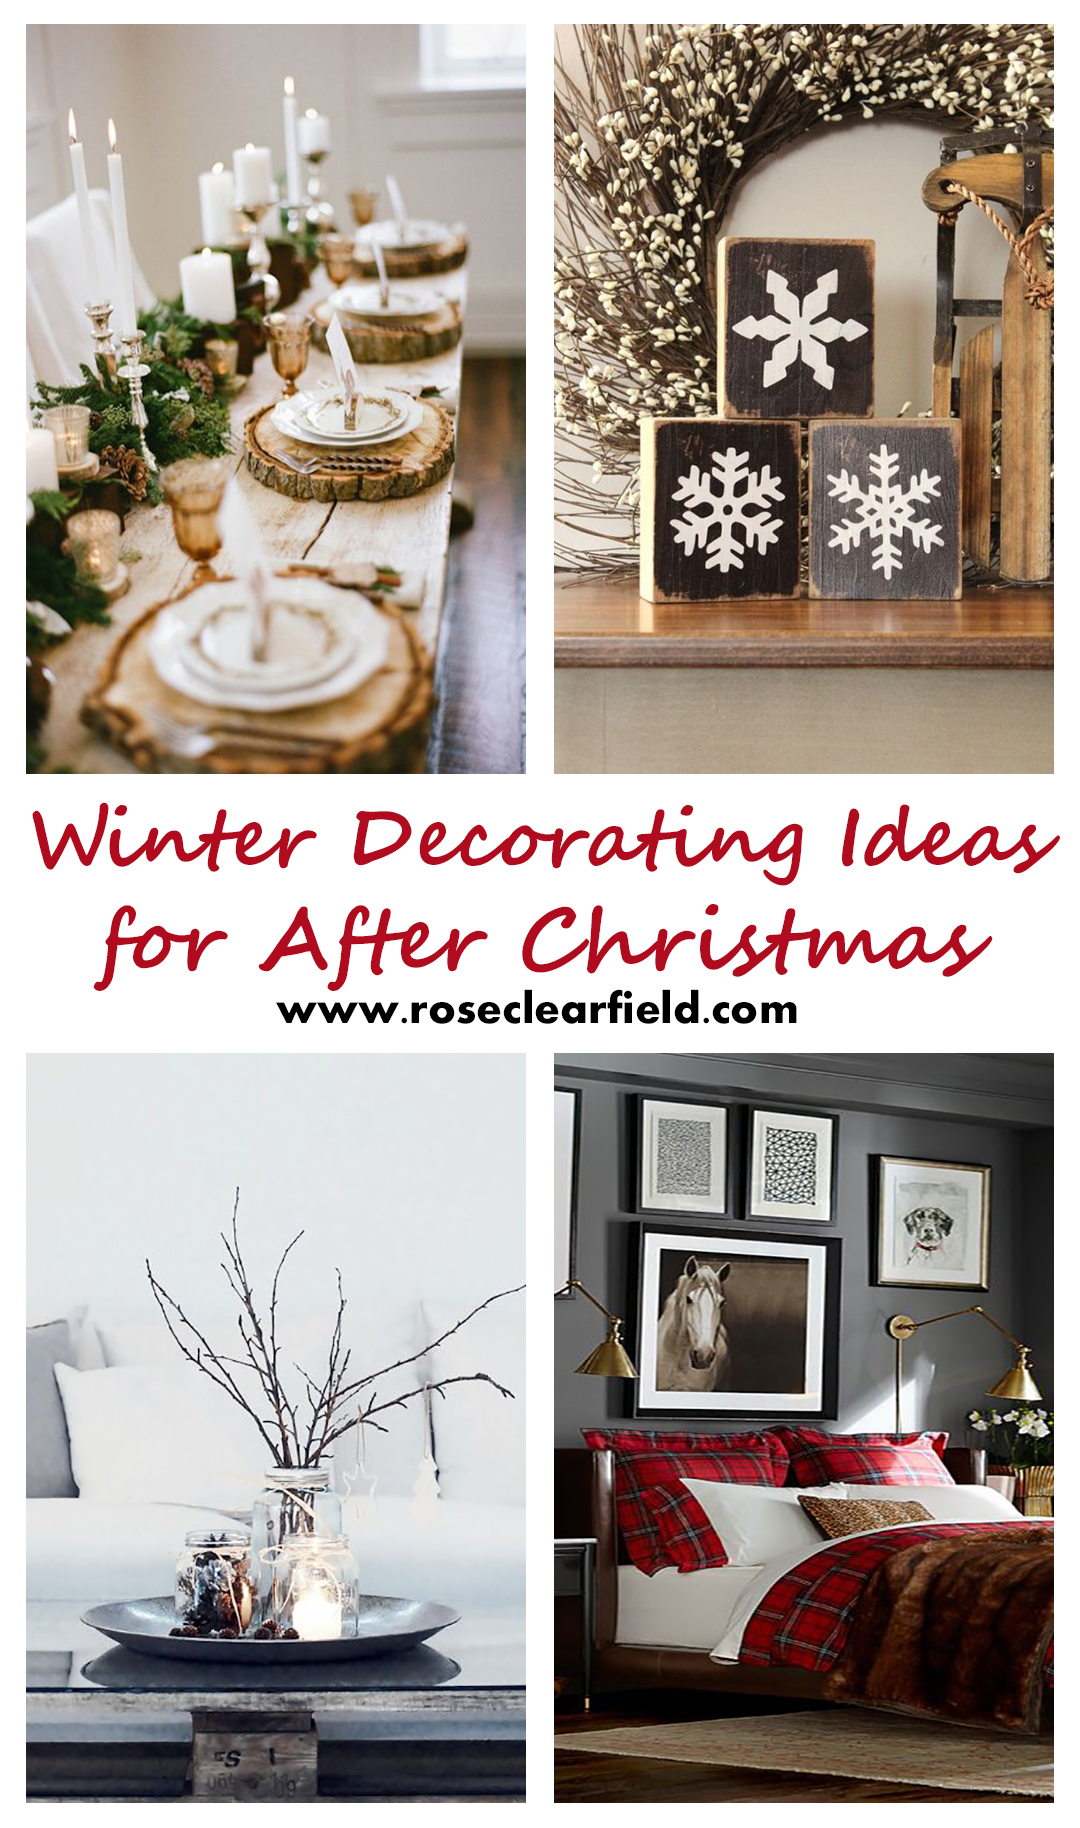 Decorating Ideas For Rentals: Winter Decorating Ideas For After Christmas • Rose Clearfield